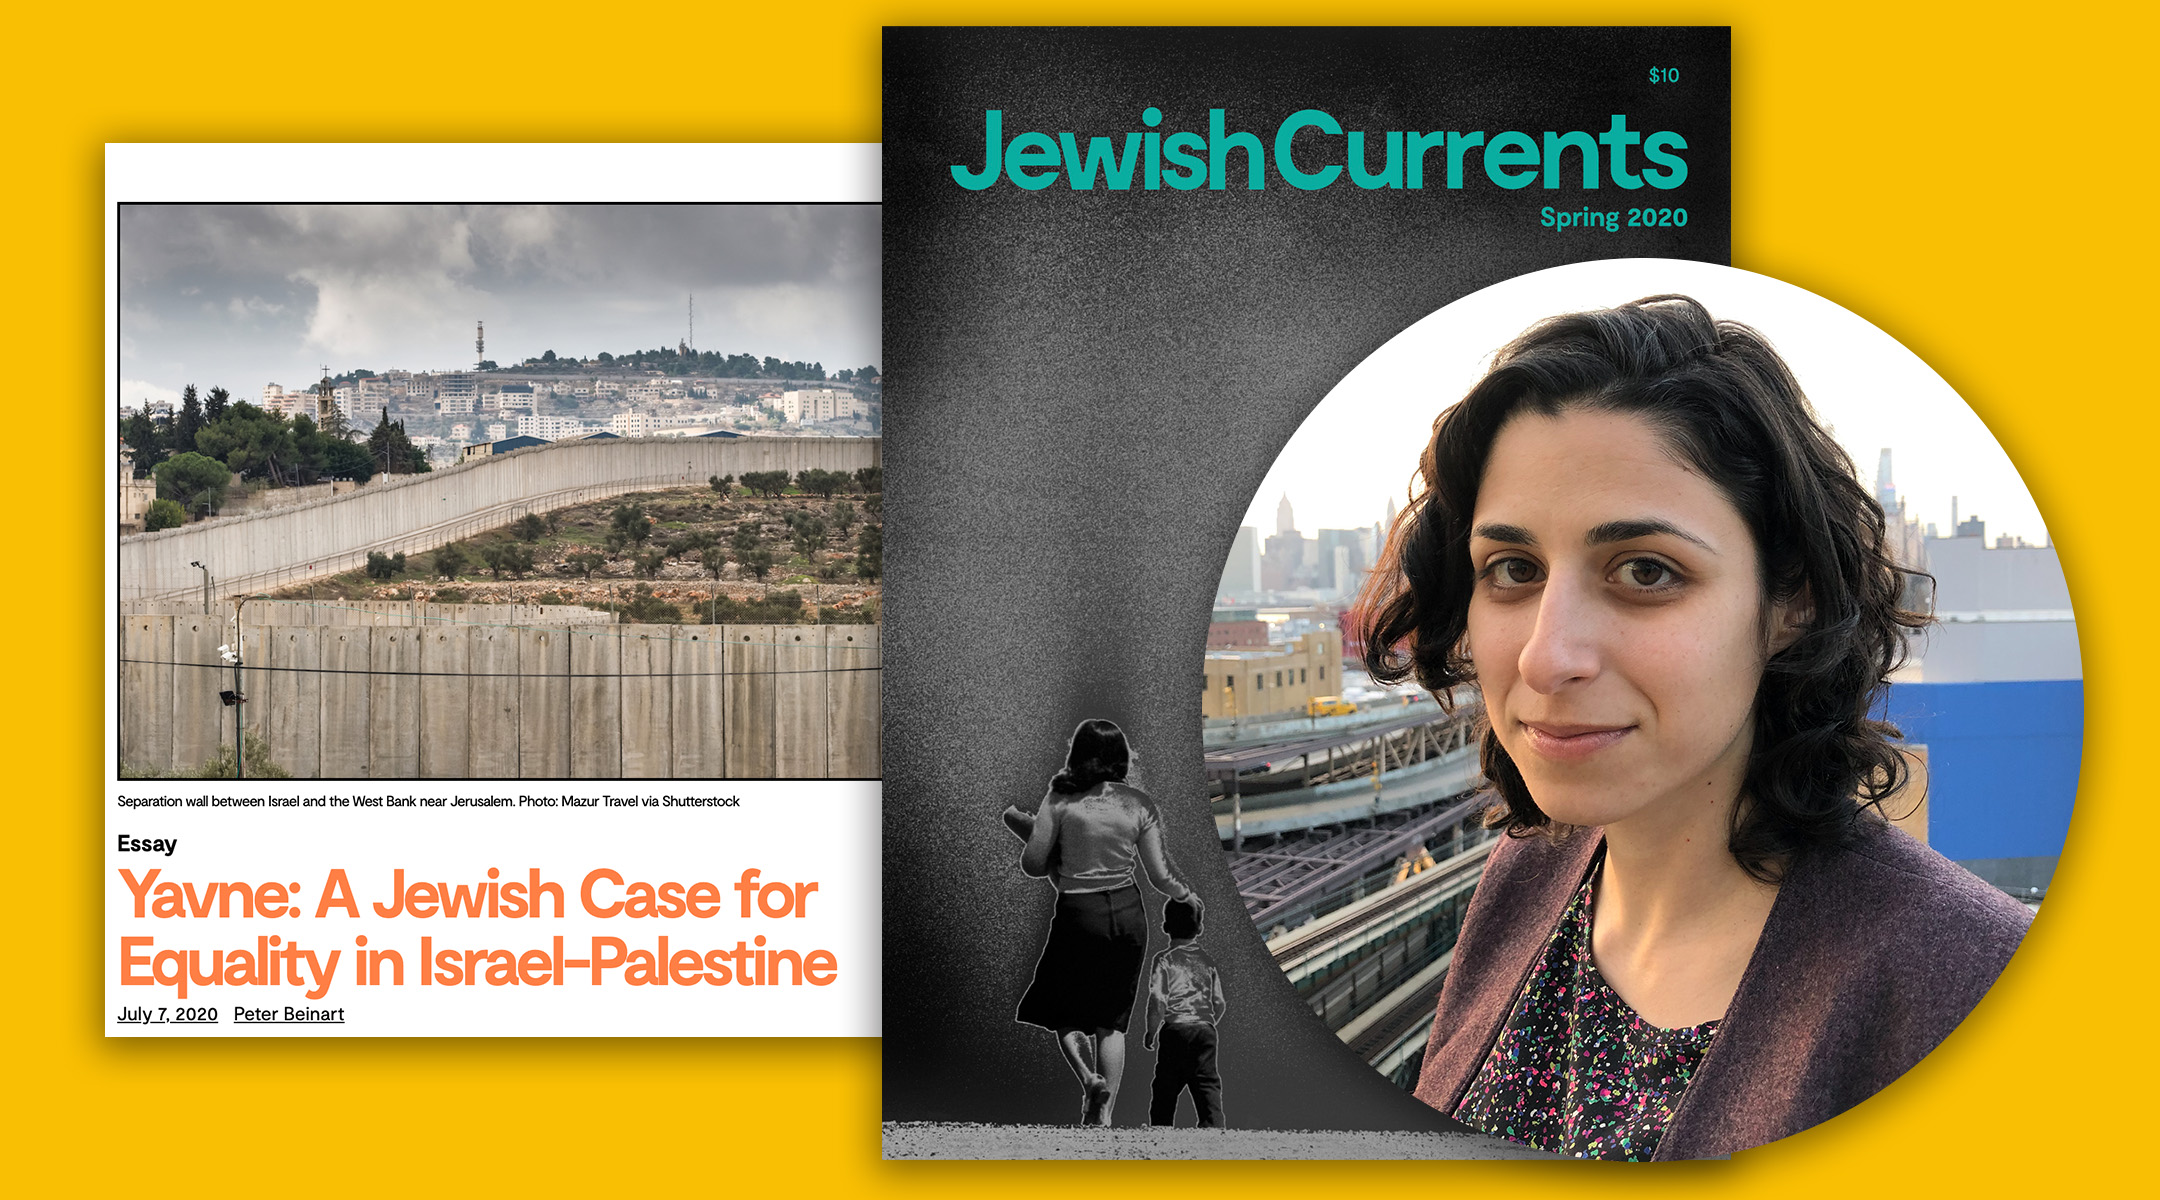 From left: A screenshot of Peter Beinart's essay on a one-state solution; Jewish Currents' Spring 2020 cover featuring Horizons (Jerusalem), 1979 by Najib Joe Hakim; the magazine's editor, Arielle Angel. (Courtesy of Angel/Jewish Currents)